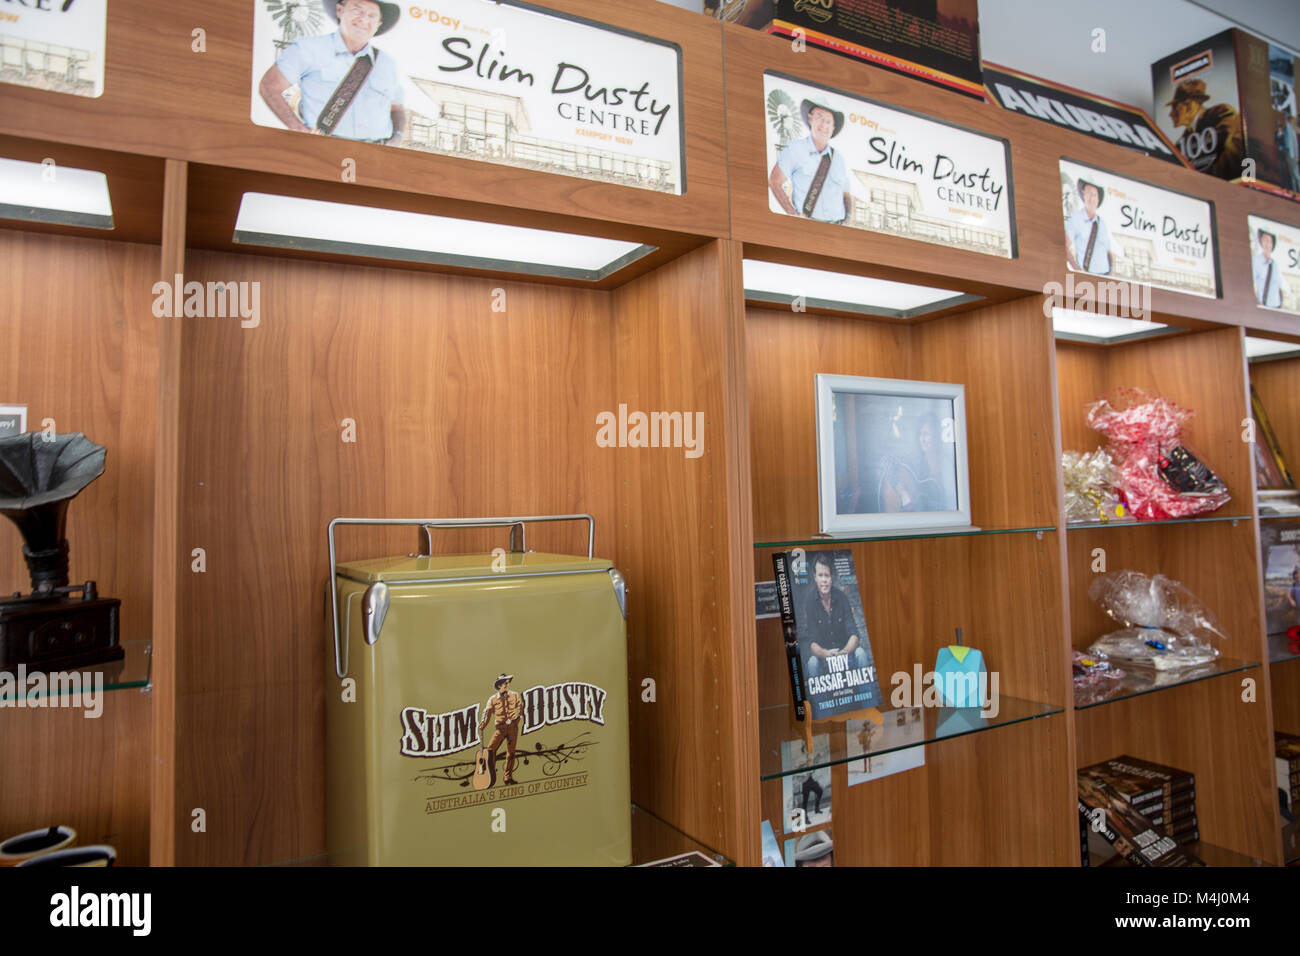 Gift shop at the Slim Dusty centre in South Kempsey,New South Wales,Australia - Stock Image